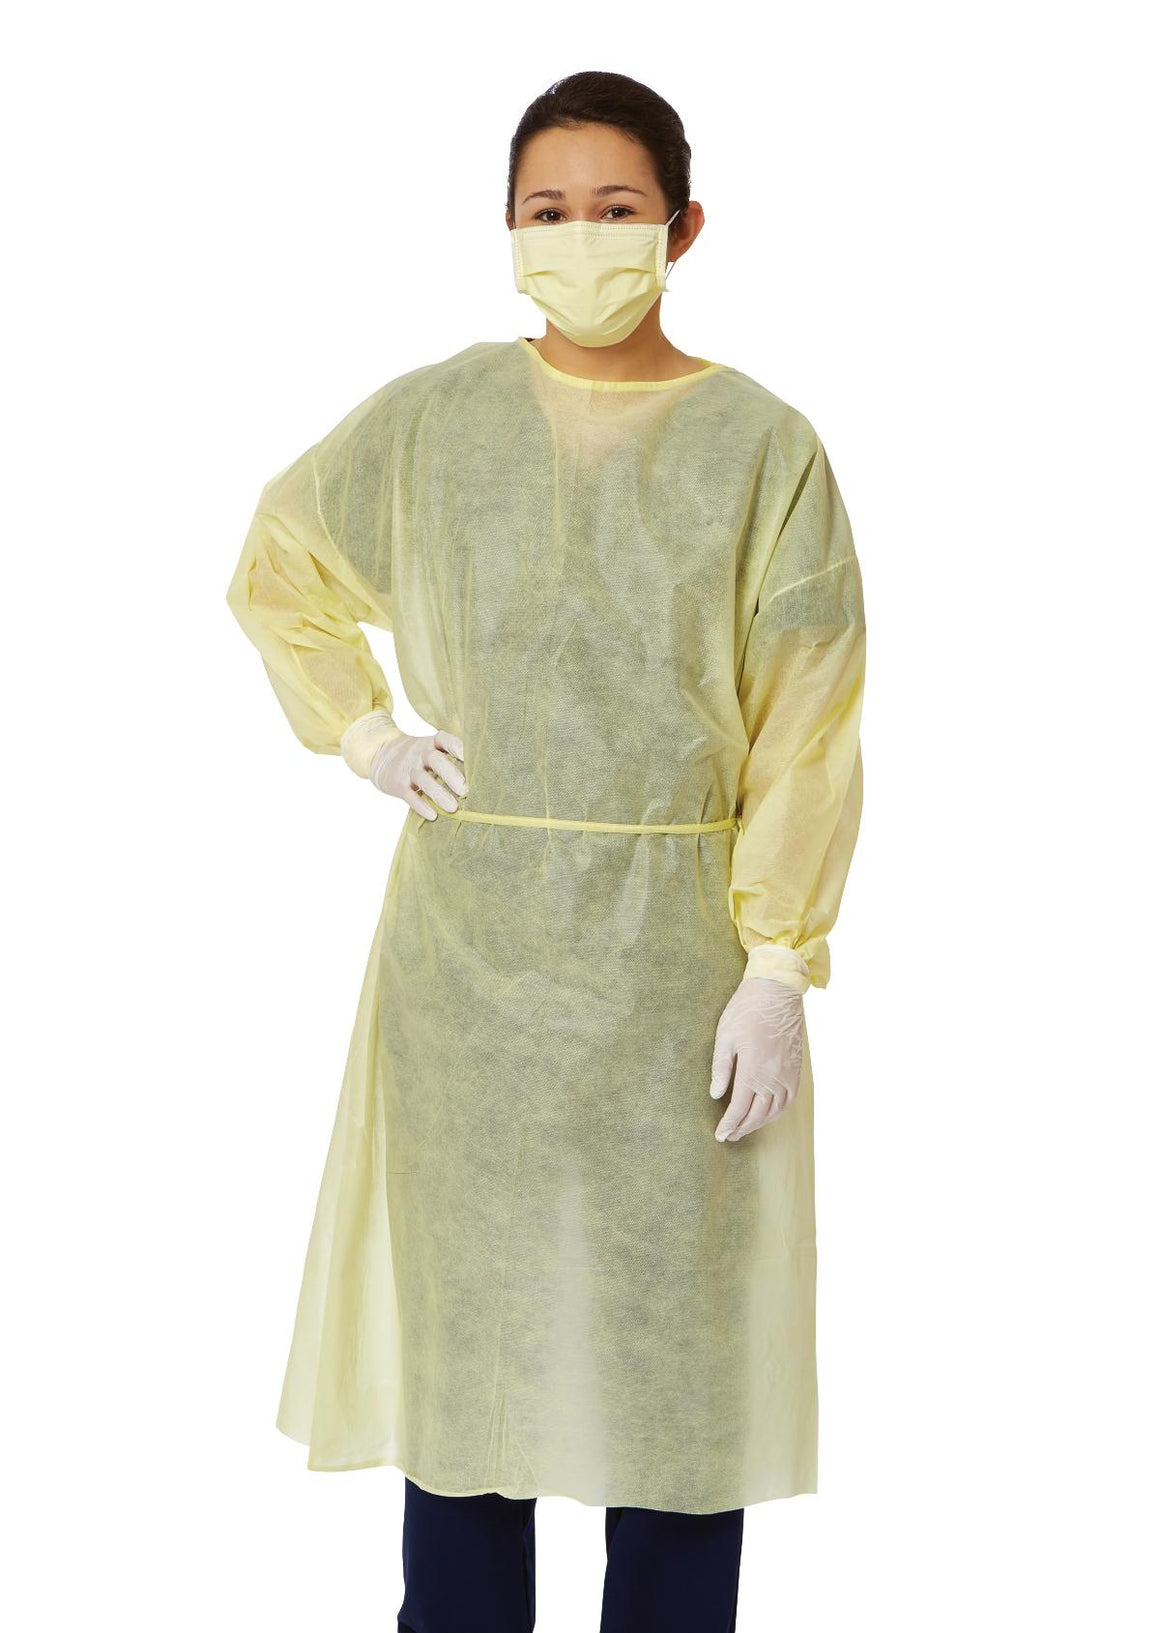 Medium Weight Multi-Ply Fluid Resistant Isolation Gown,Yellow,X-Large, Case of 1